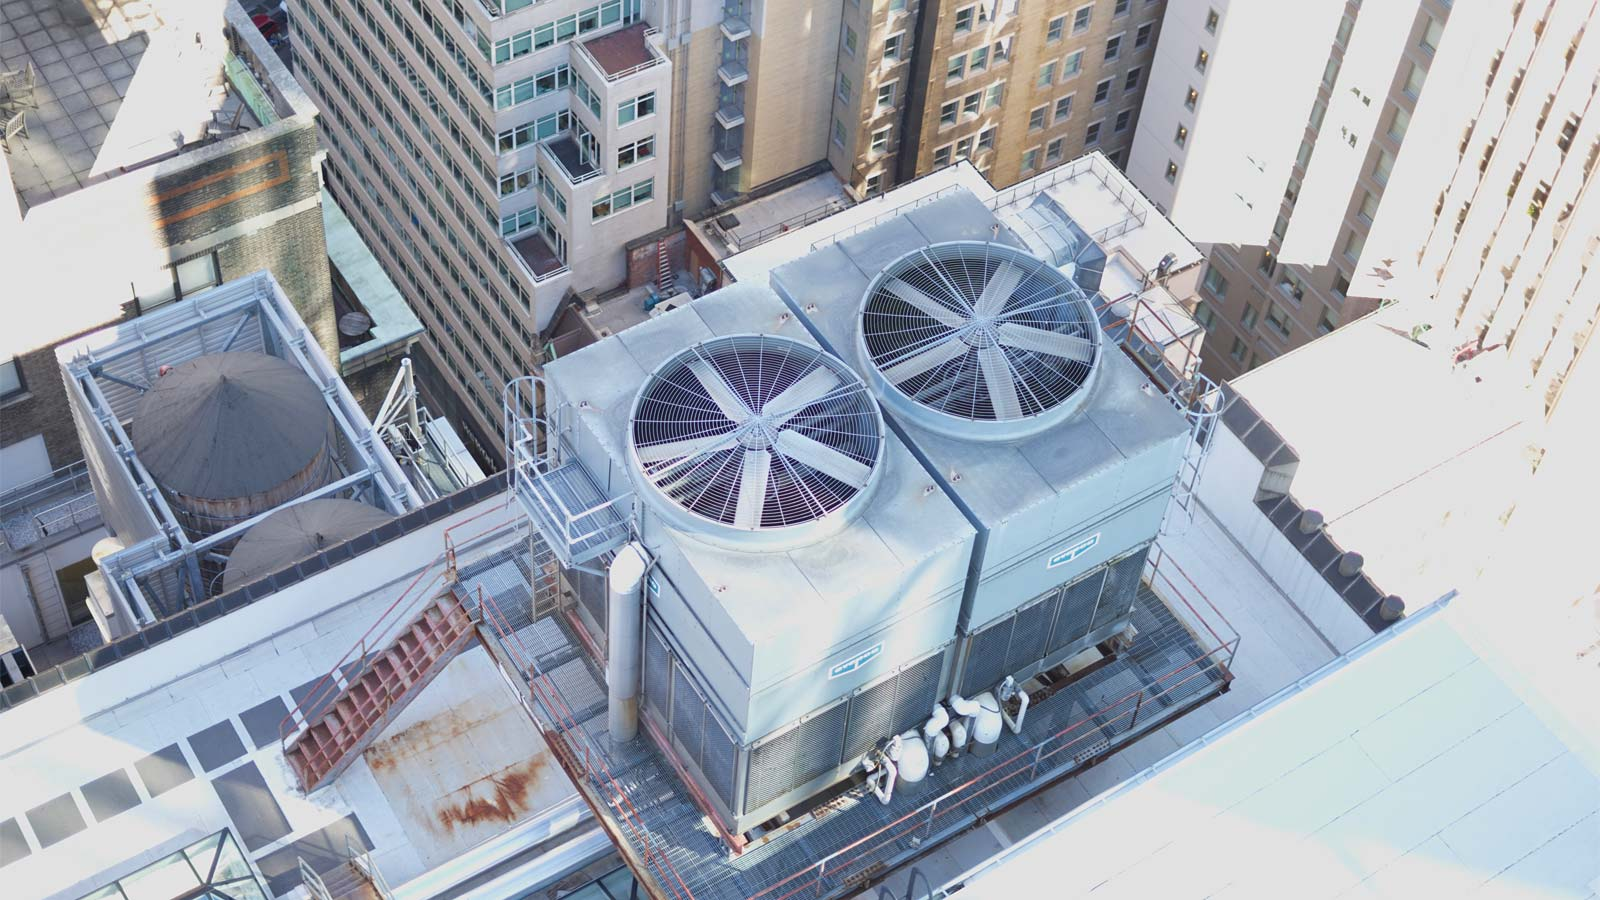 a cooling tower in NYC that is starting up during the spring